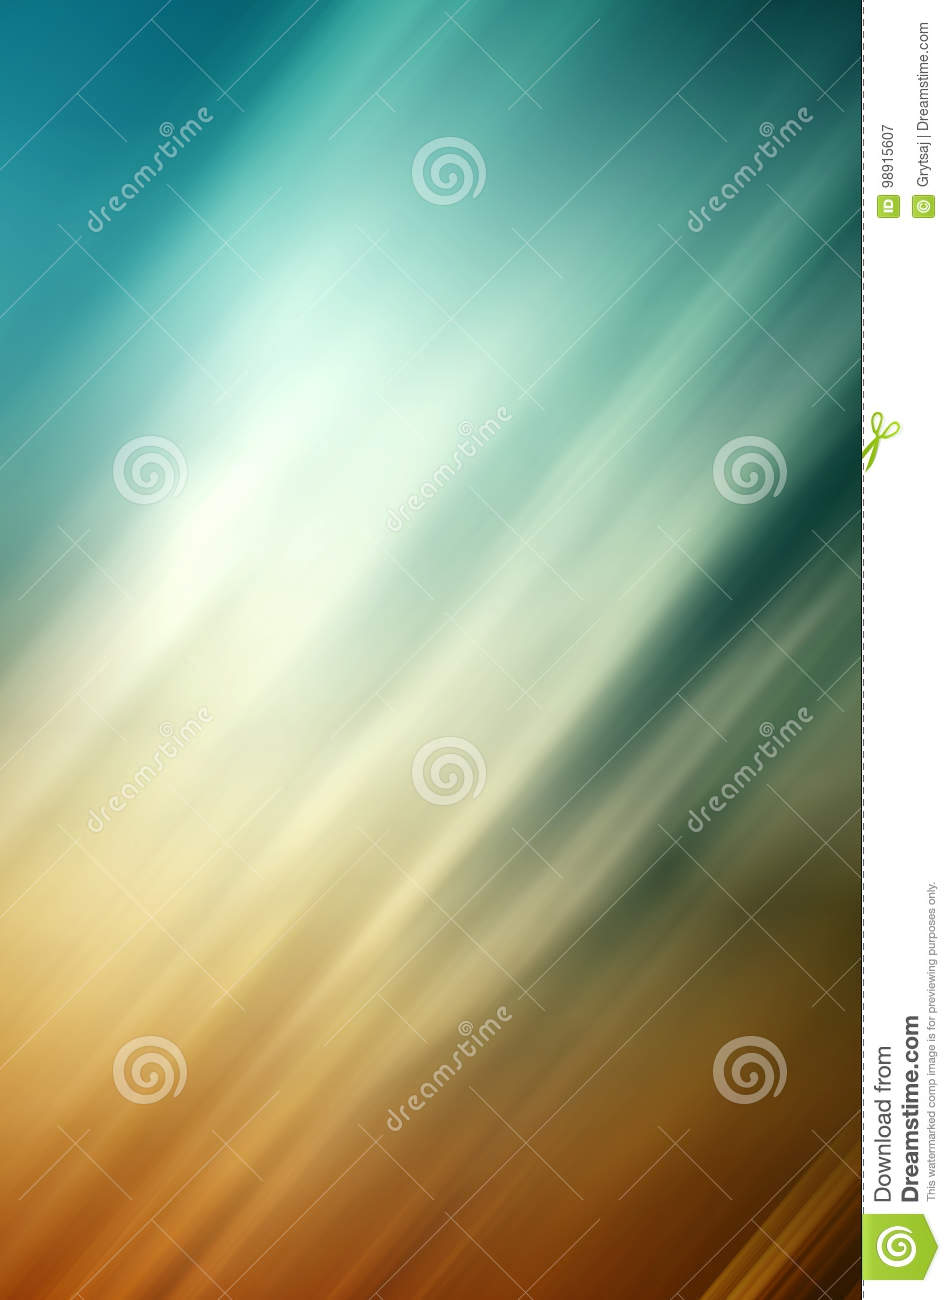 Download Abstract Diagonal Lines stock image. Image of moving - 98915607